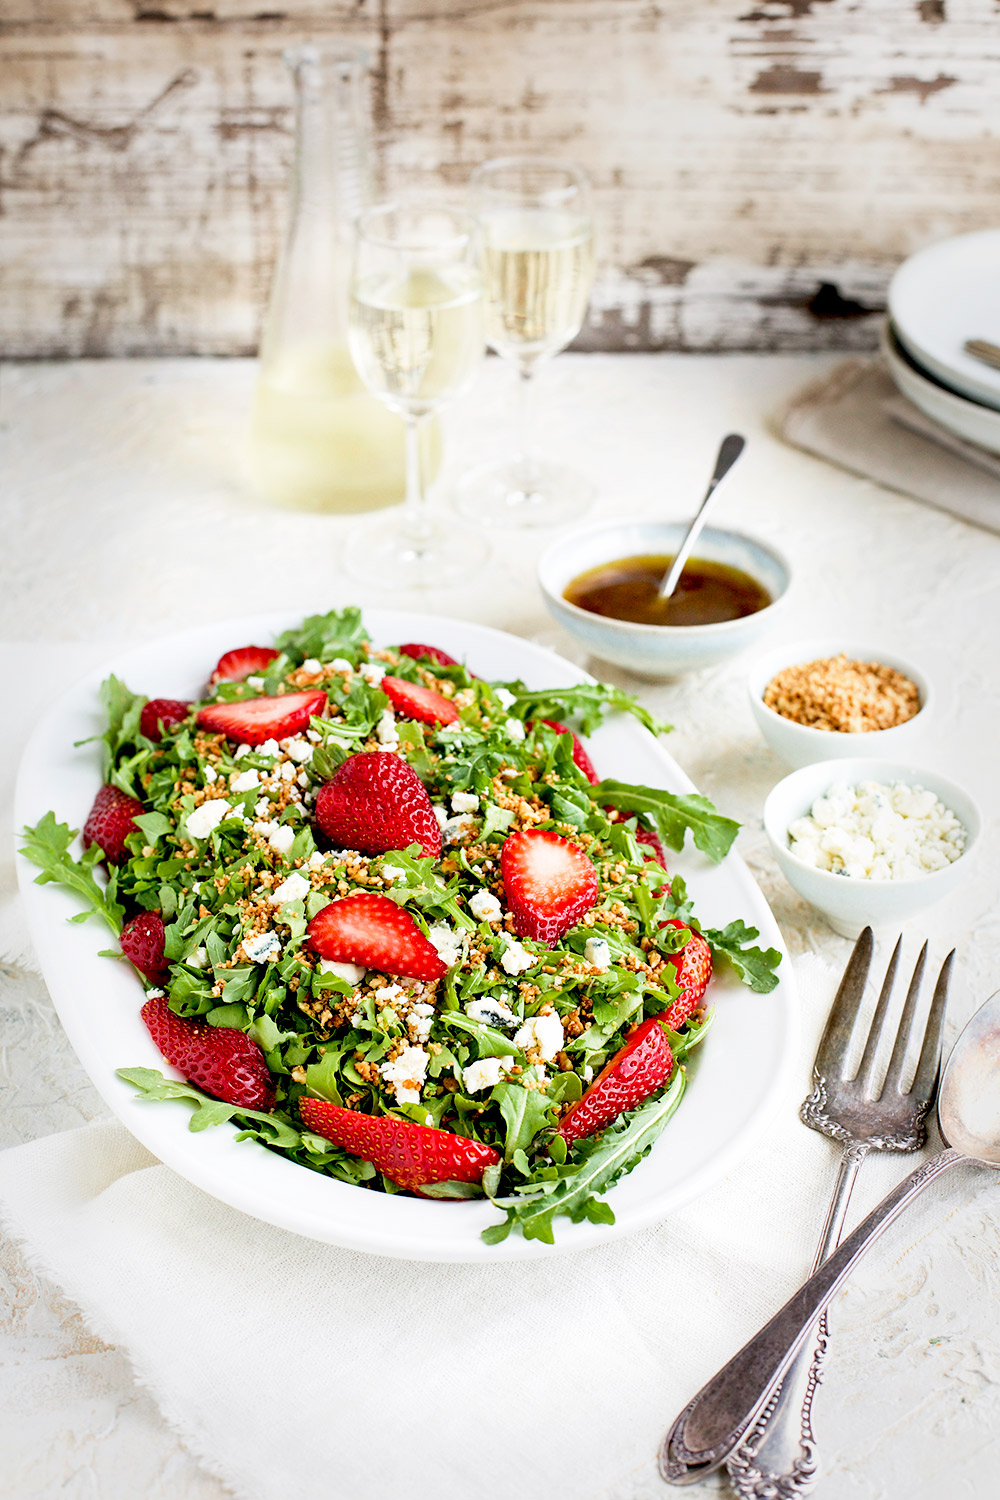 Strawberry Arugula Salad with Hibiscus Vinaigrette